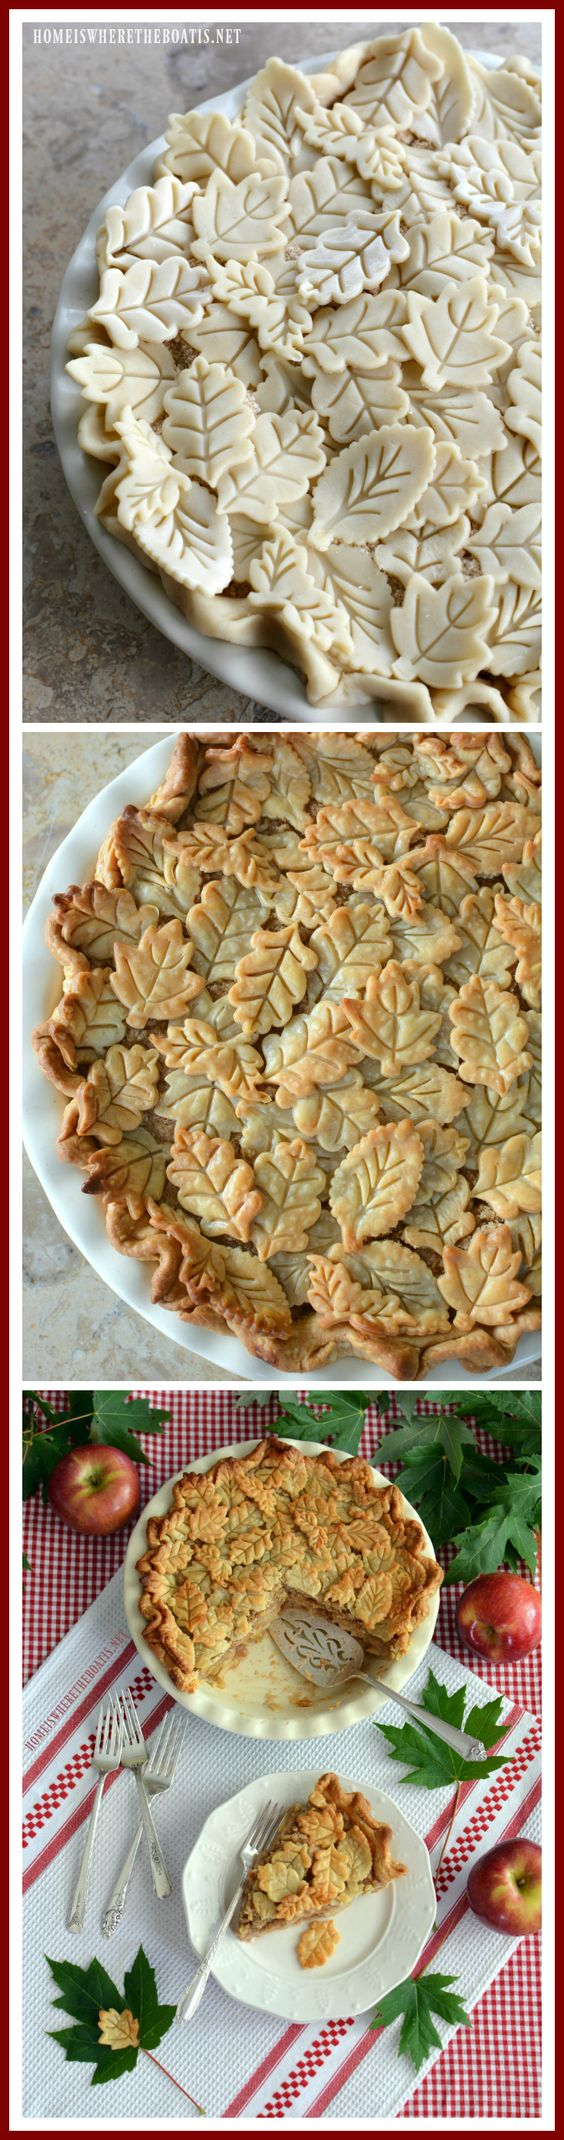 Apple Pie with pie crust leaf embellishments | homeiswheretheboatis.net #fall #desserts #apple #pie